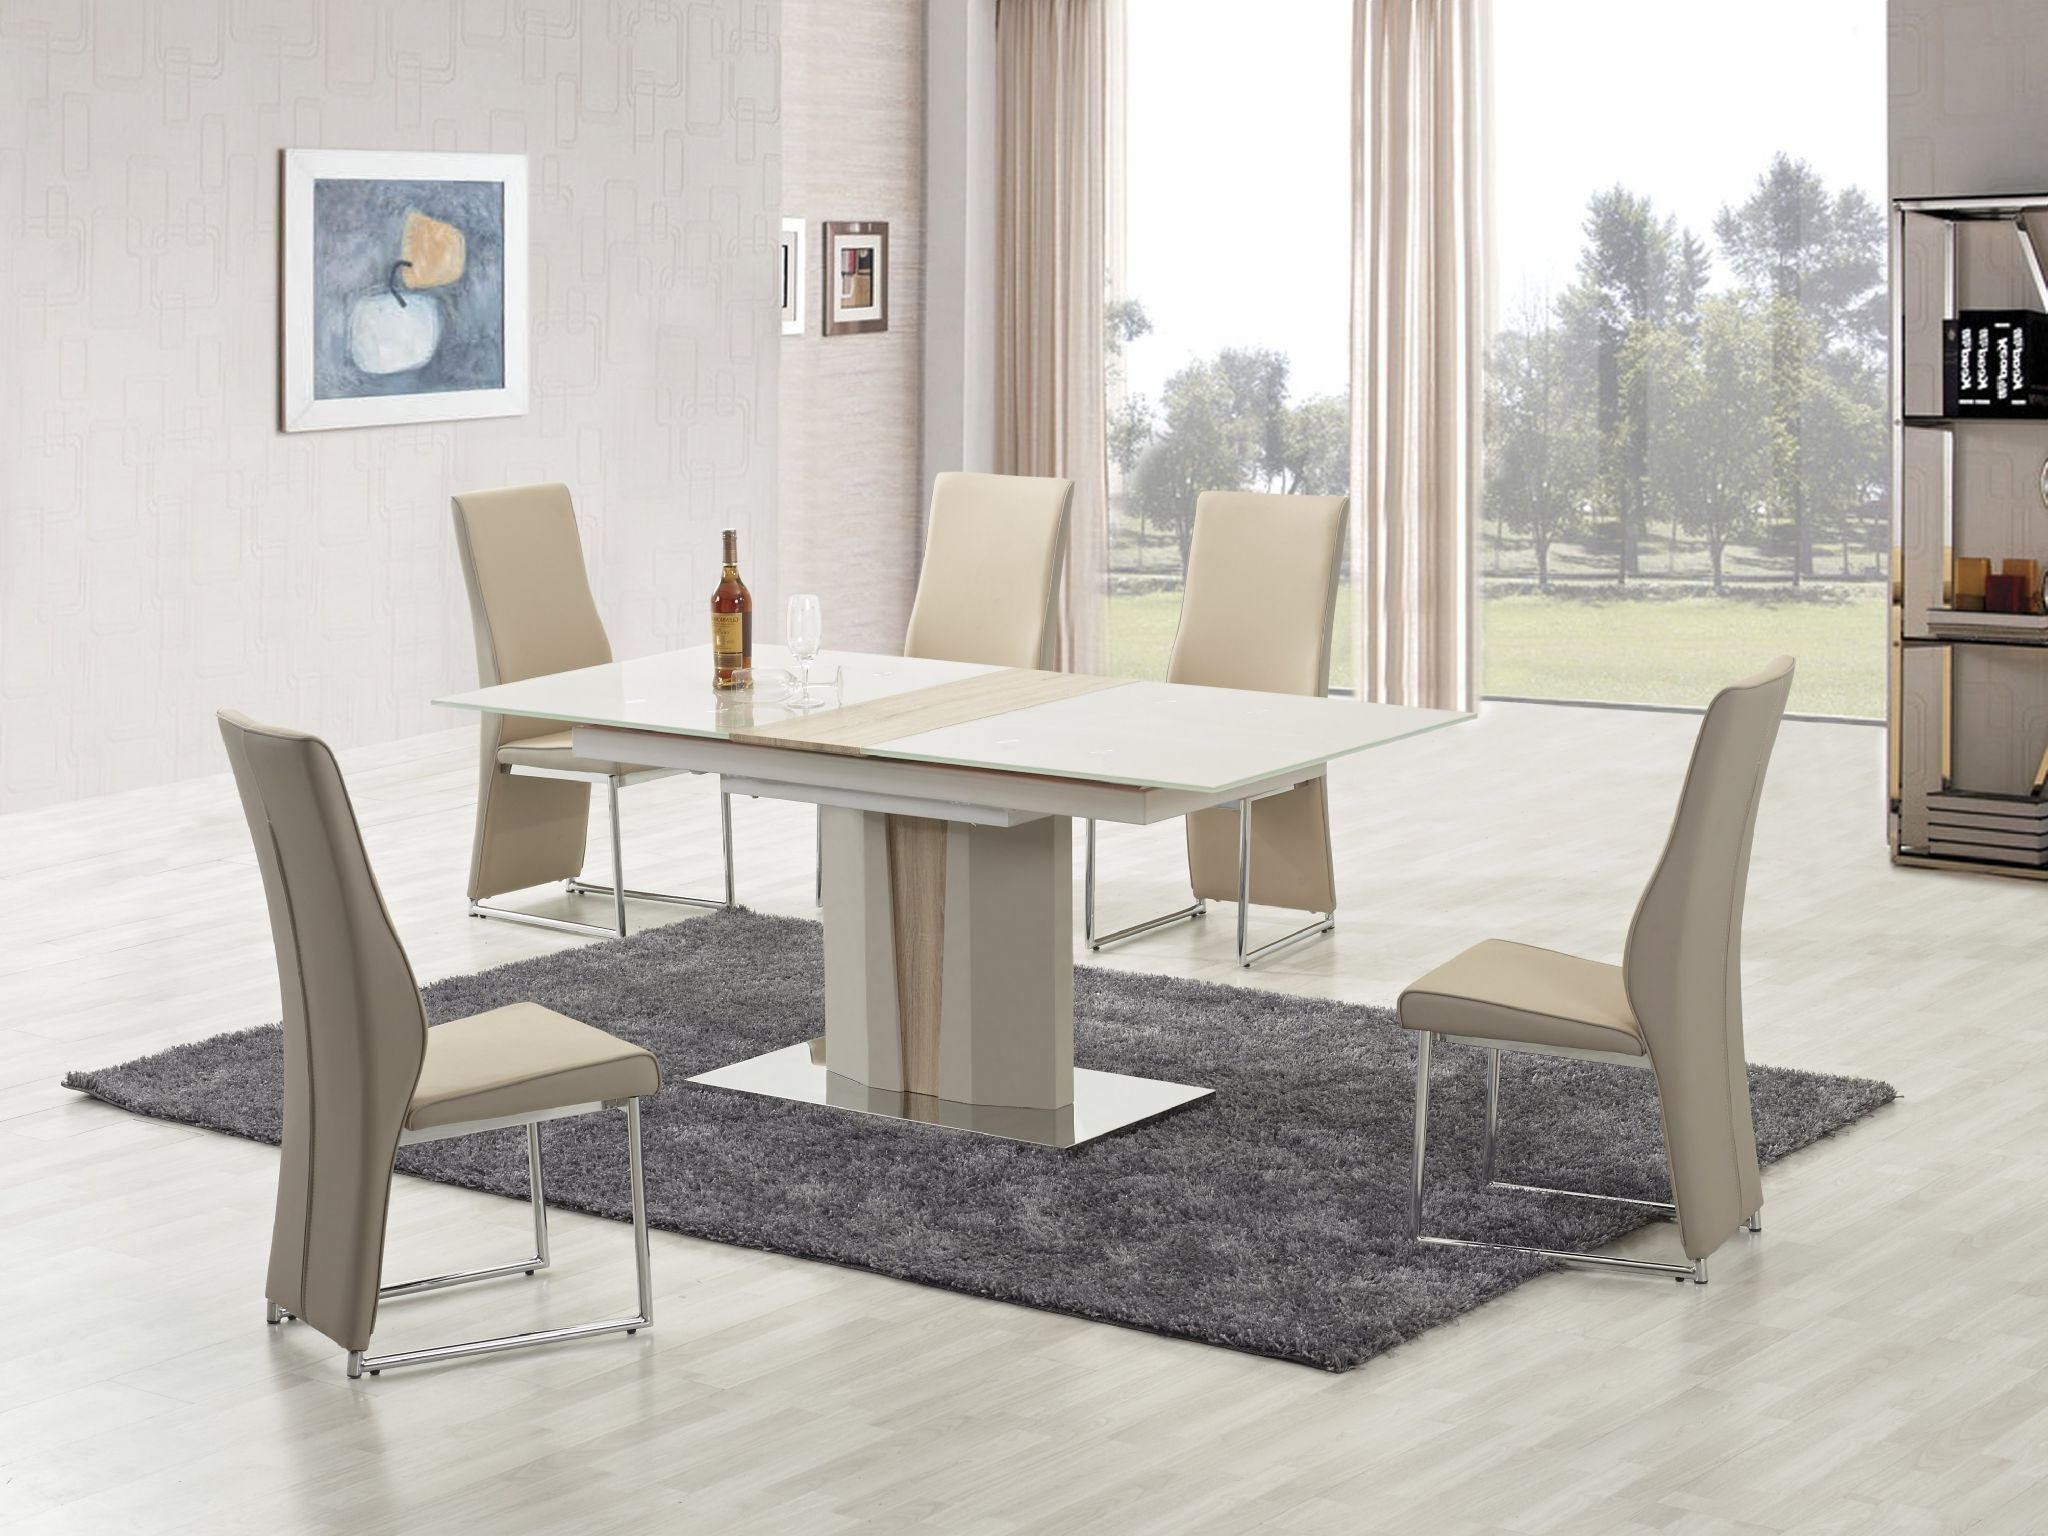 Most Recent Buy Imperial Champagne Extendable Dining Table Intended For 180Cm Dining Tables (Gallery 12 of 25)